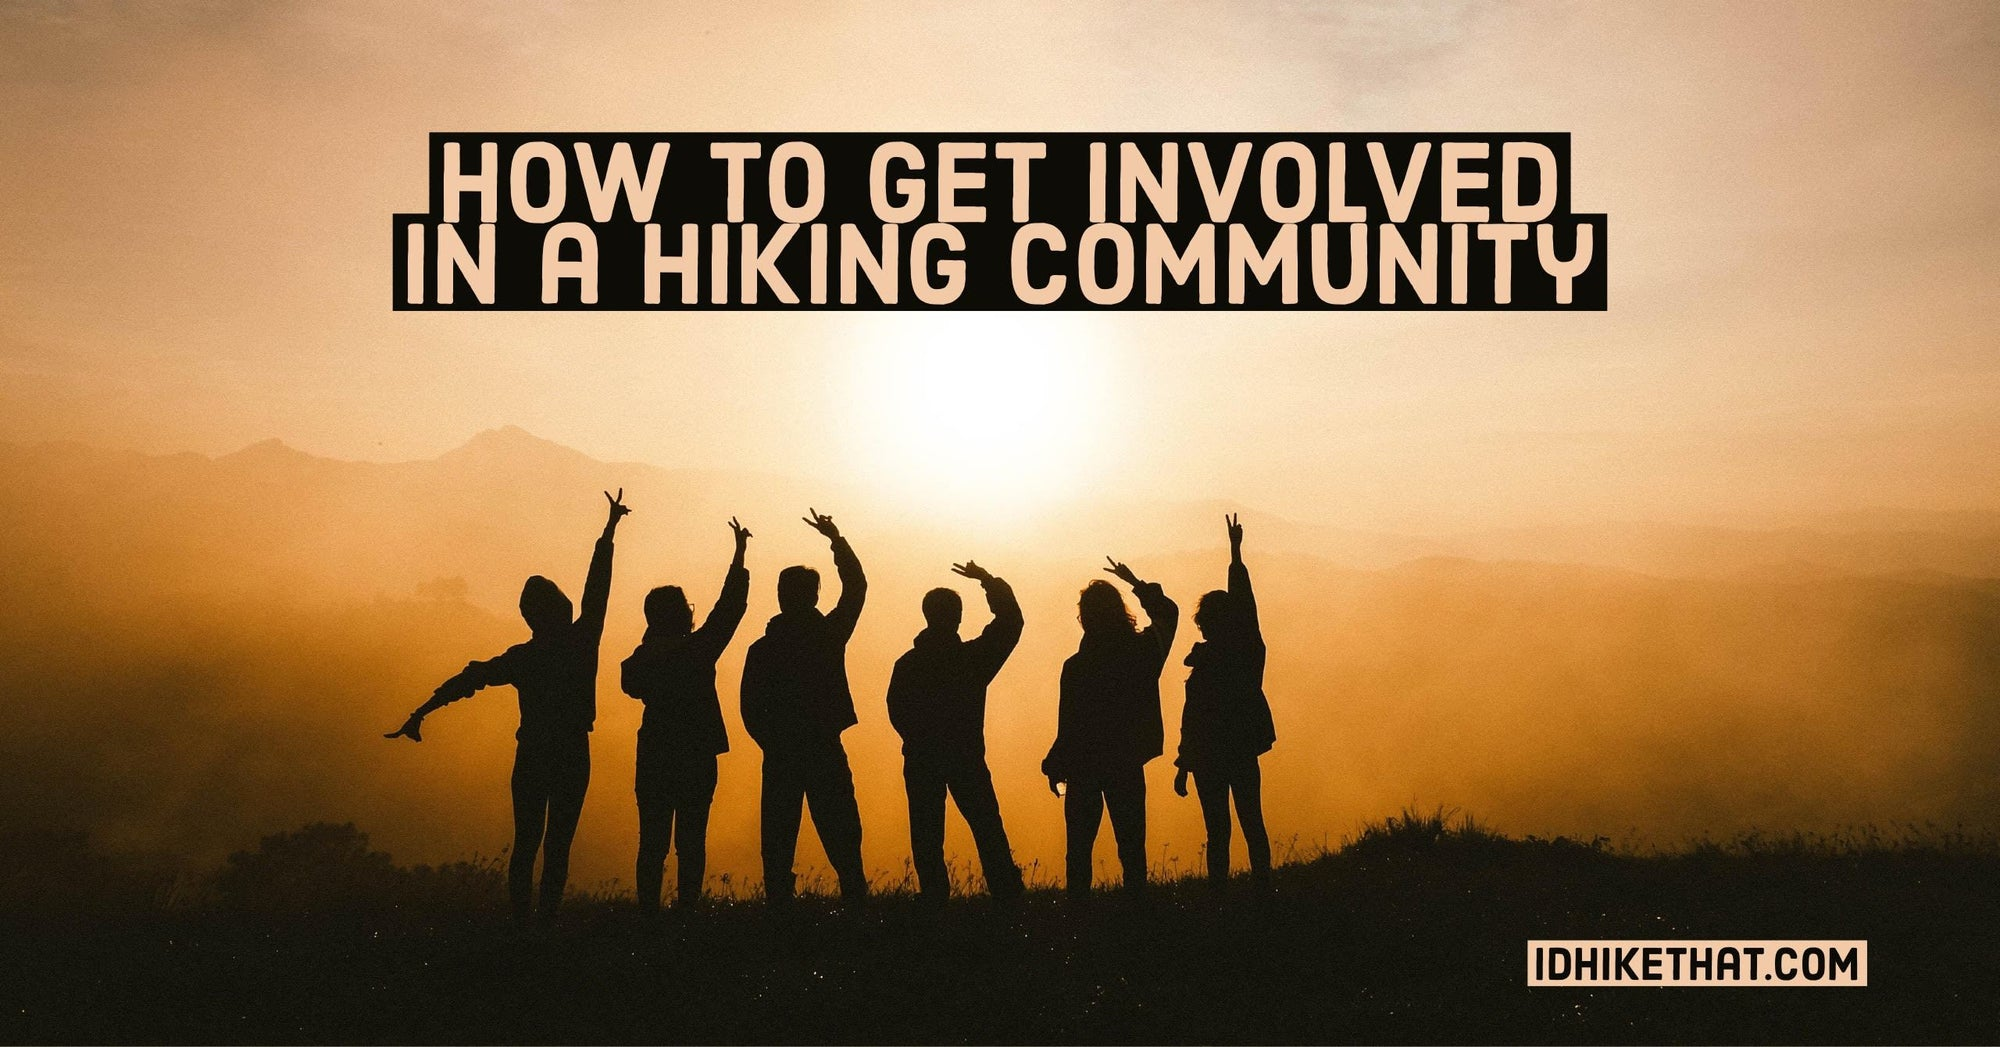 How to get involved in a hiking community. Visit idhikethat.com to find out how.